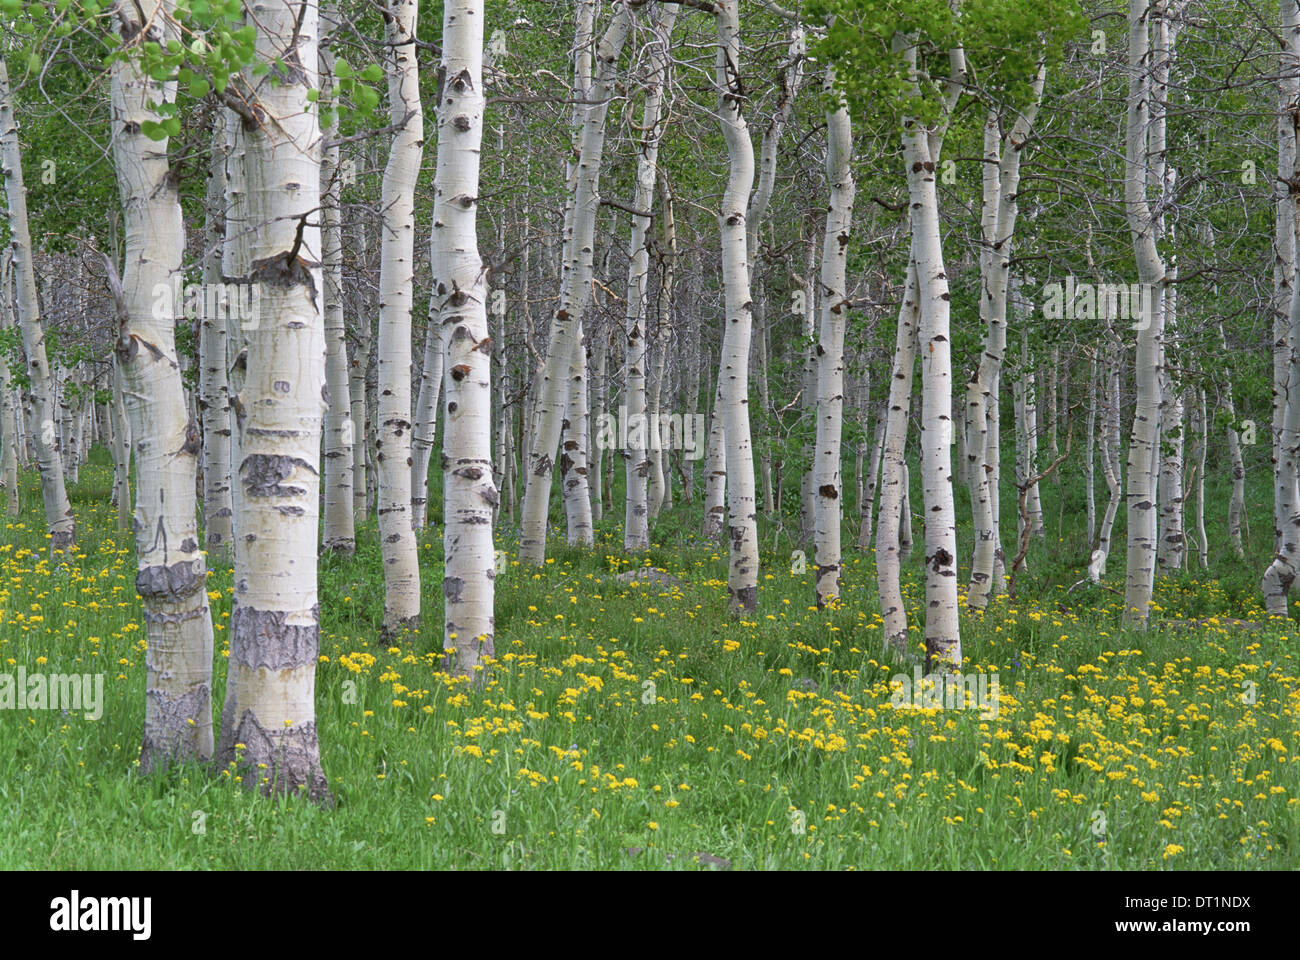 Grove of aspen trees with white bark and bright green vivid colours in the wild flowers and grasses underneath Stock Photo